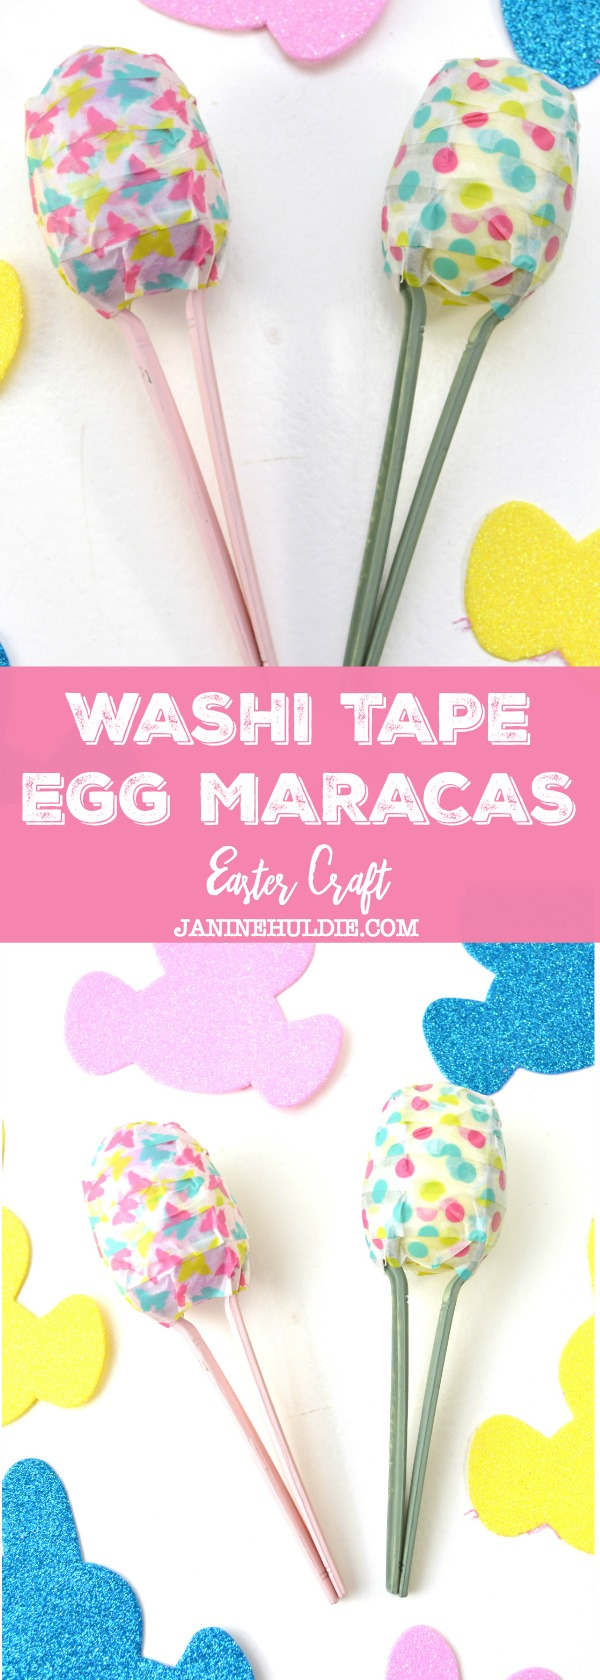 Egg Maracas, This Mom's Confessions